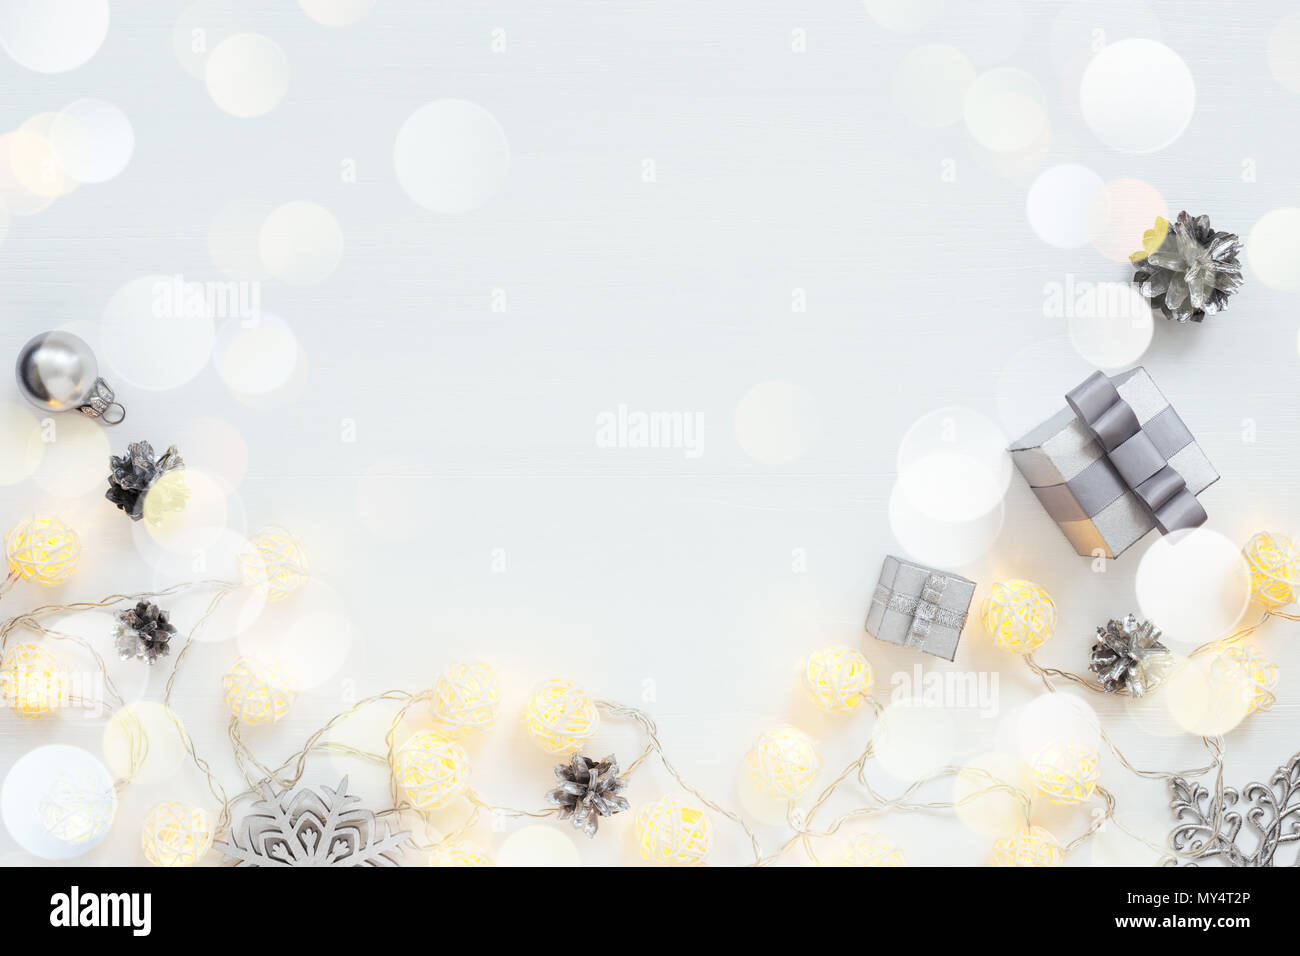 christmas lights silver new year decorations gifts snowflakes garland on bright holiday background